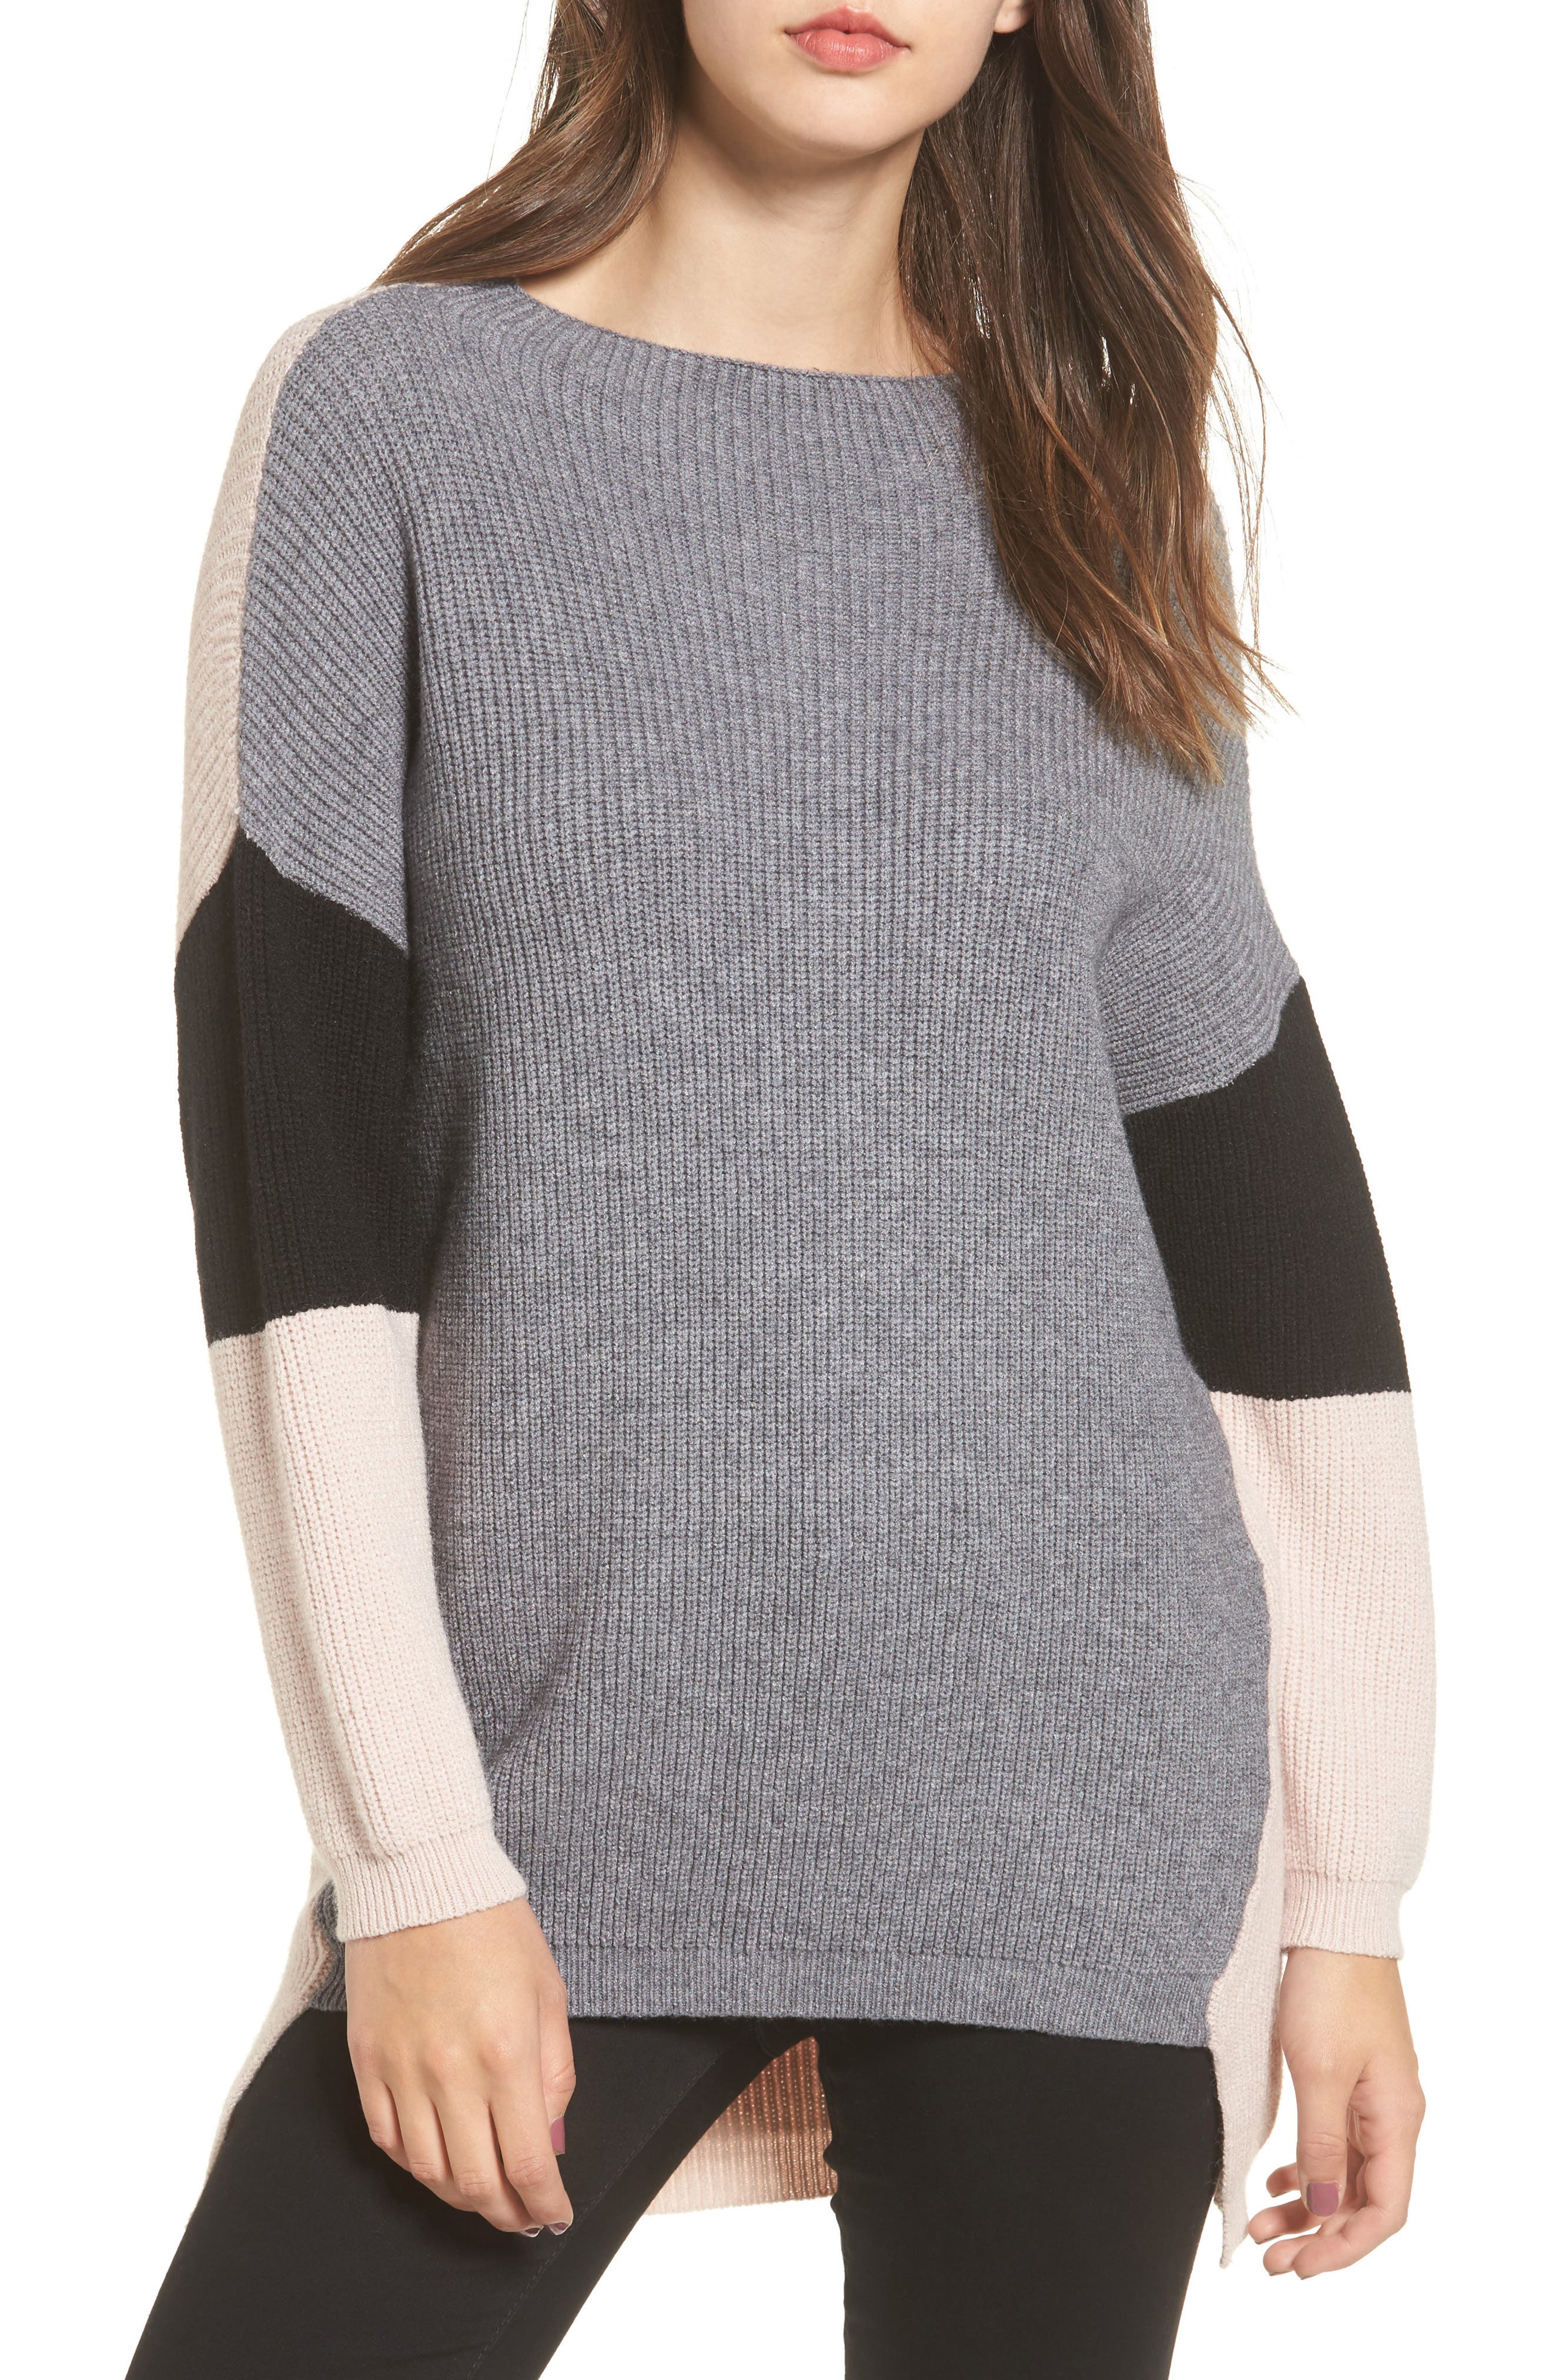 Alternate Image 1 Selected - Dreamers by Debut Colorblock Tunic Sweater